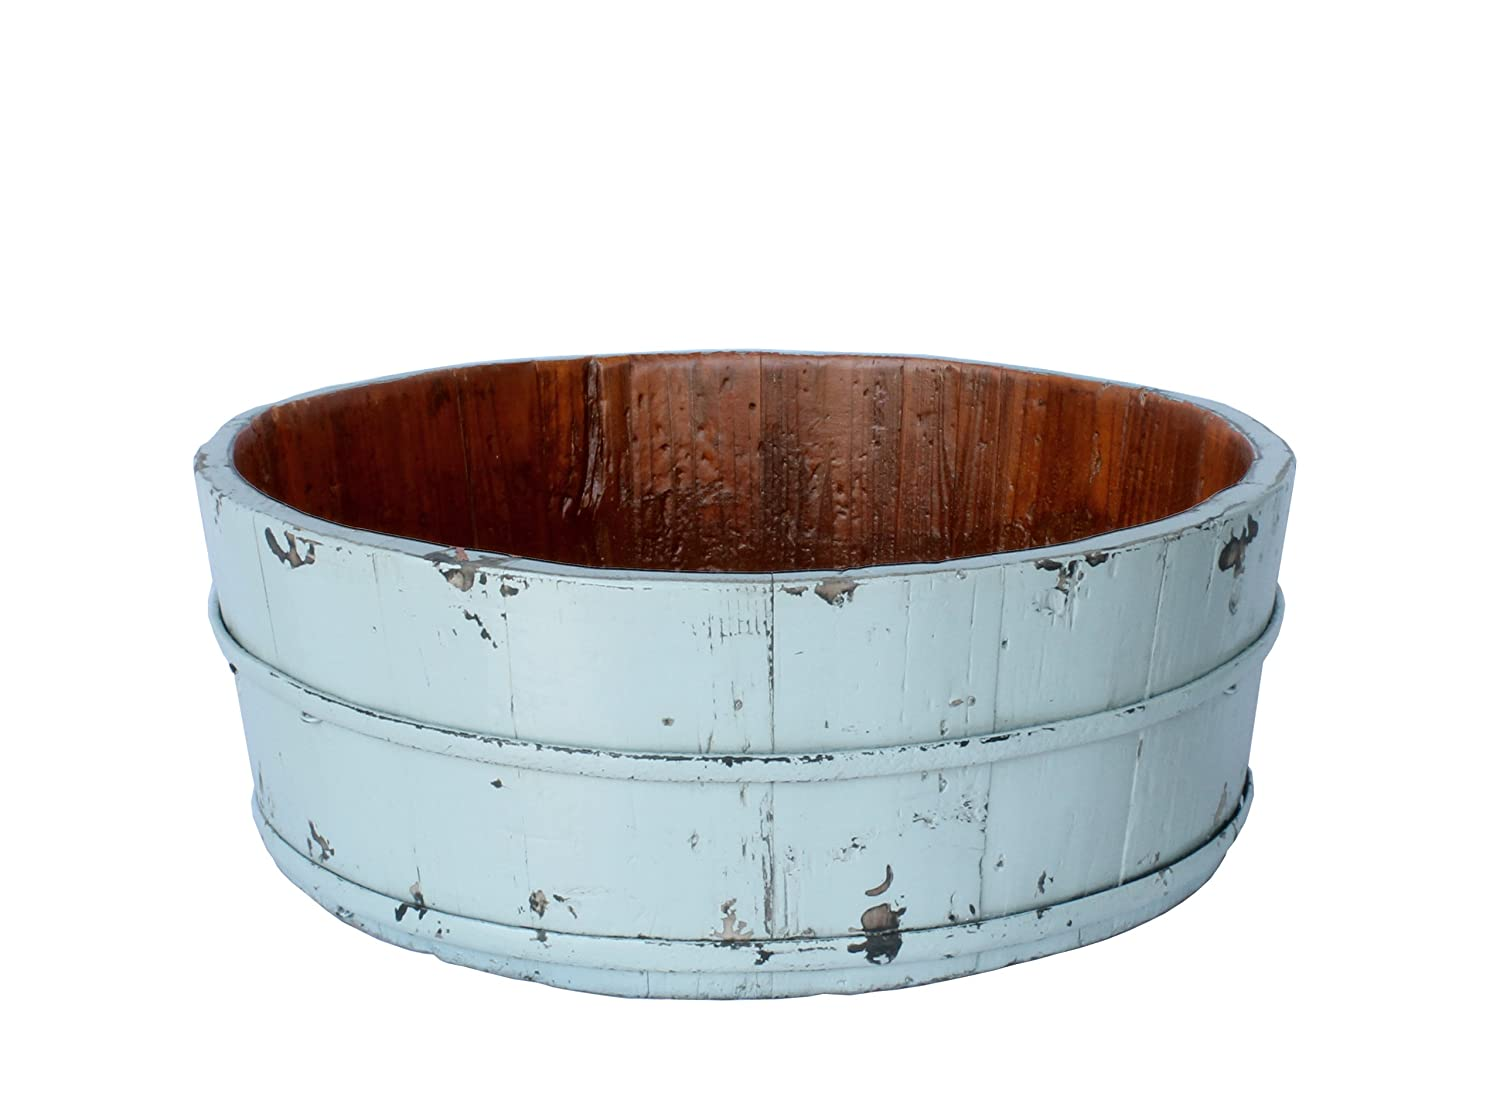 Antique Revival Wooden Round Basin Bucket, Aqua luxury antique wooded